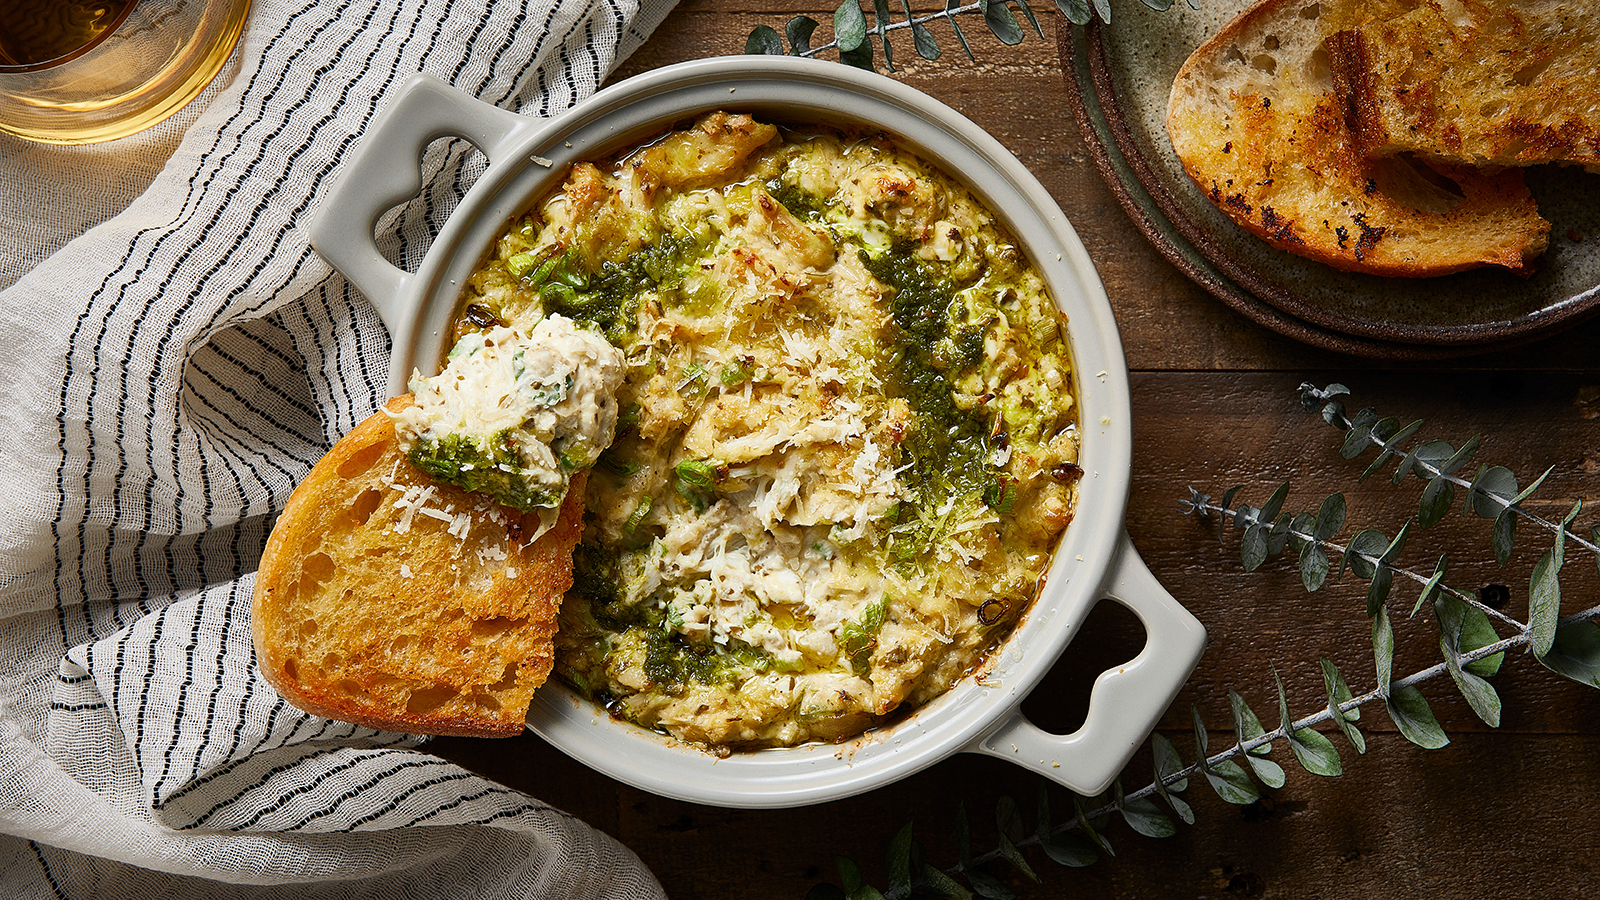 Crab and Artichoke Pesto Dip